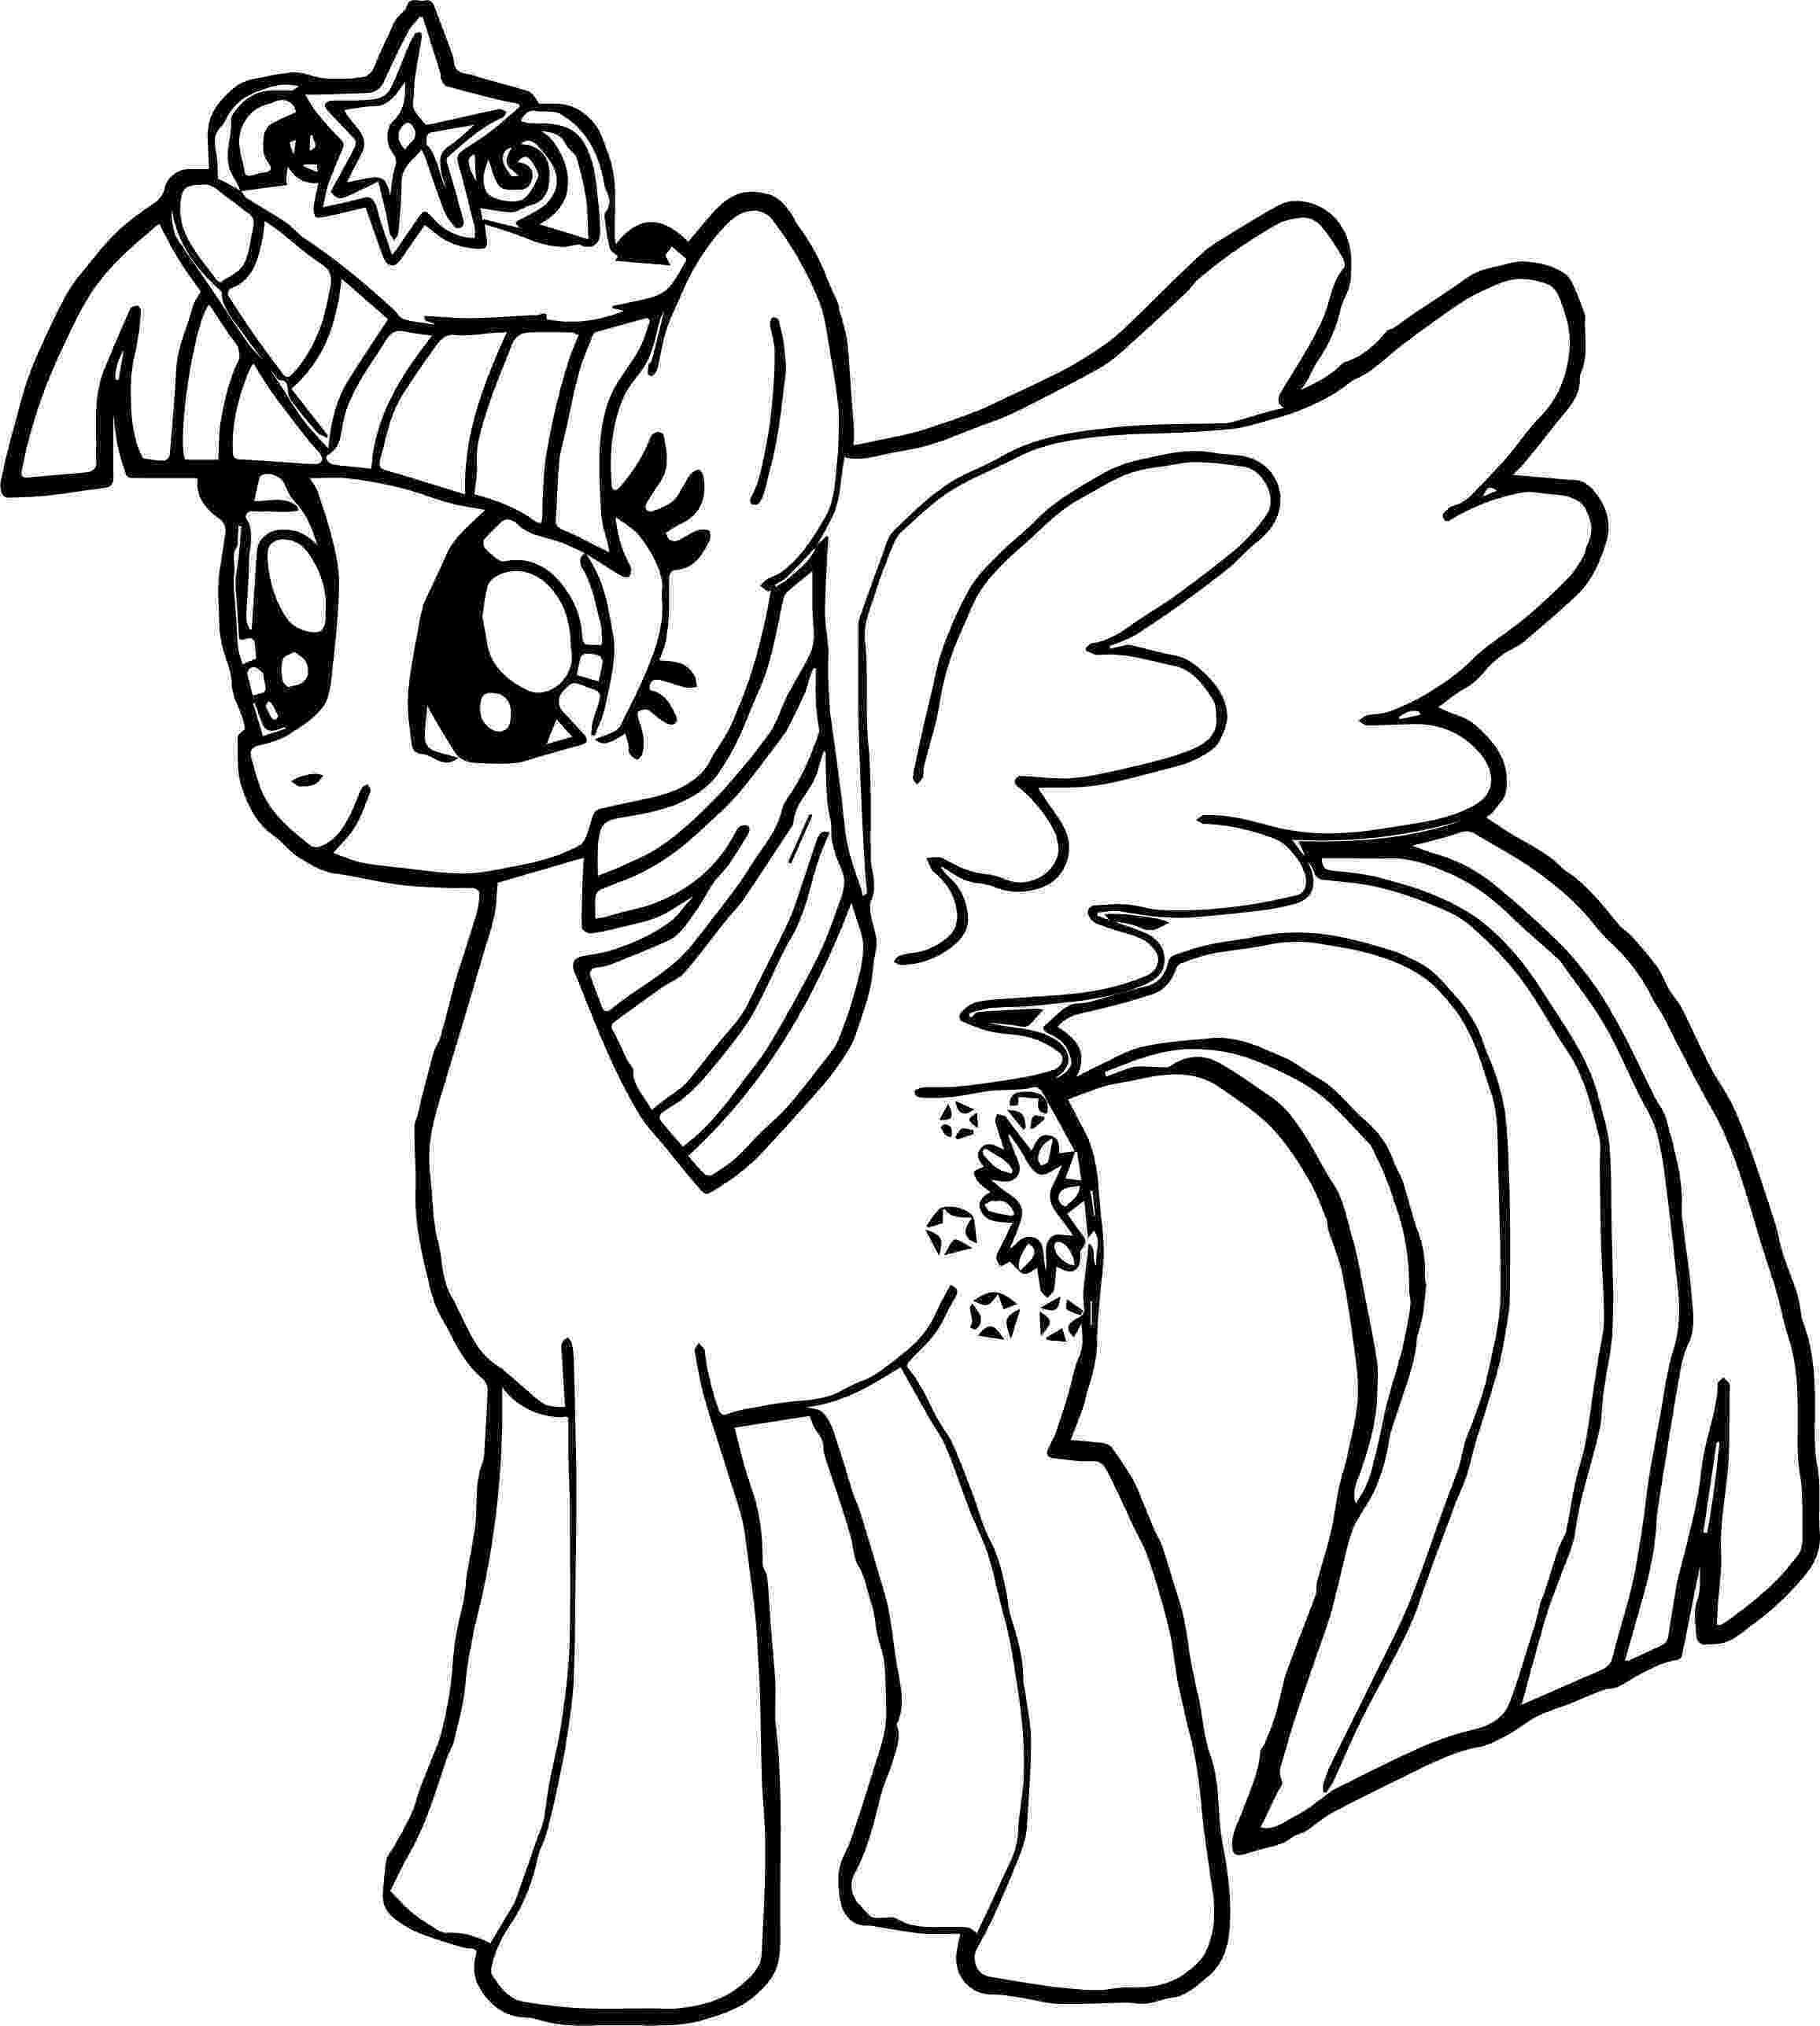 princess twilight sparkle coloring pages new princess twilight sparkle coloring page coloring pages twilight sparkle princess